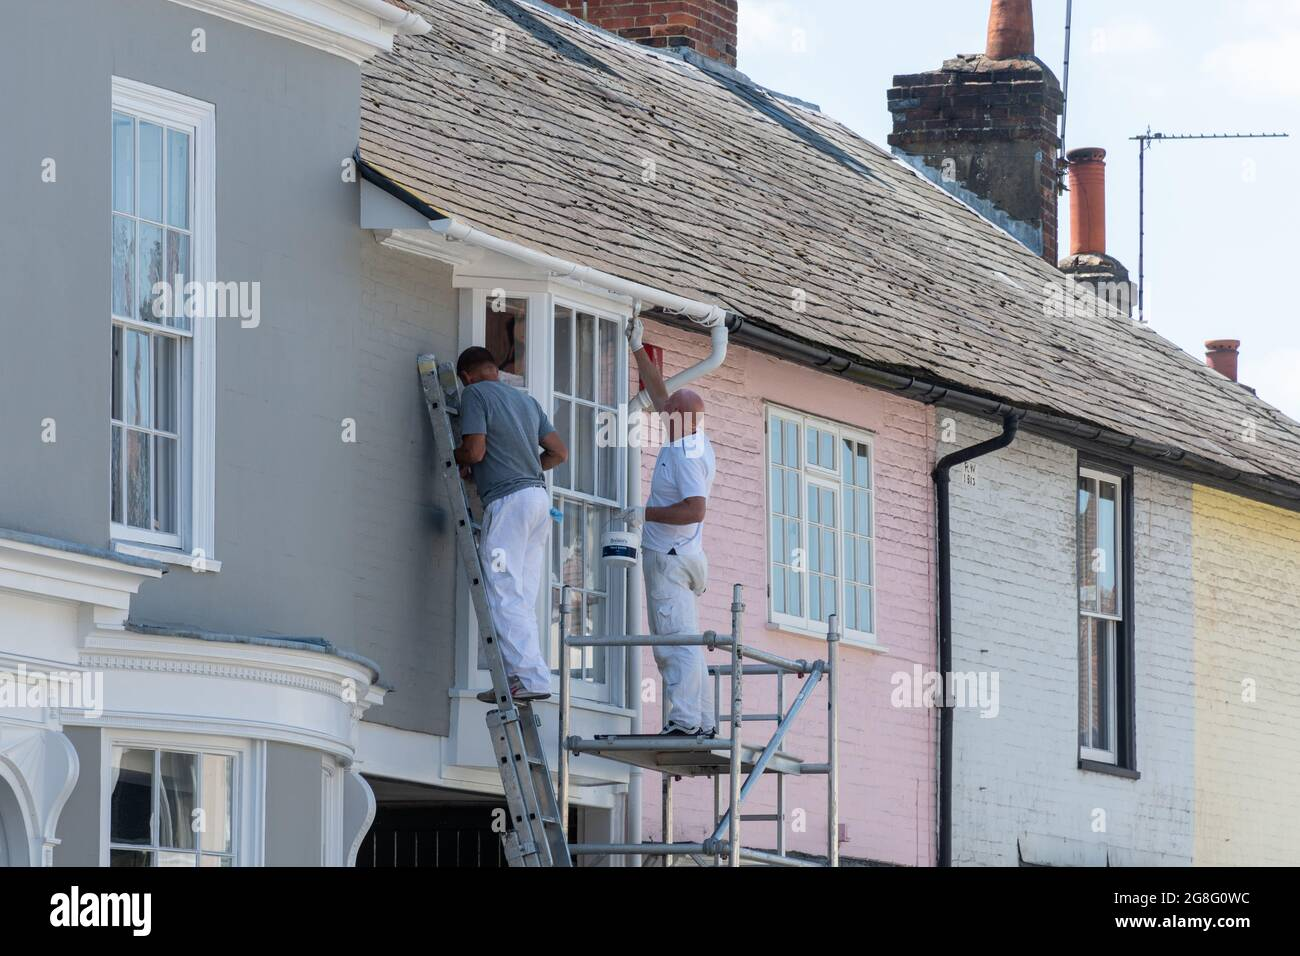 two-painters-and-decorators-painting-the-exterior-of-a-house-in-the-pretty-market-town-of-alresford-hampshire-england-uk-2G8G0WC.jpg